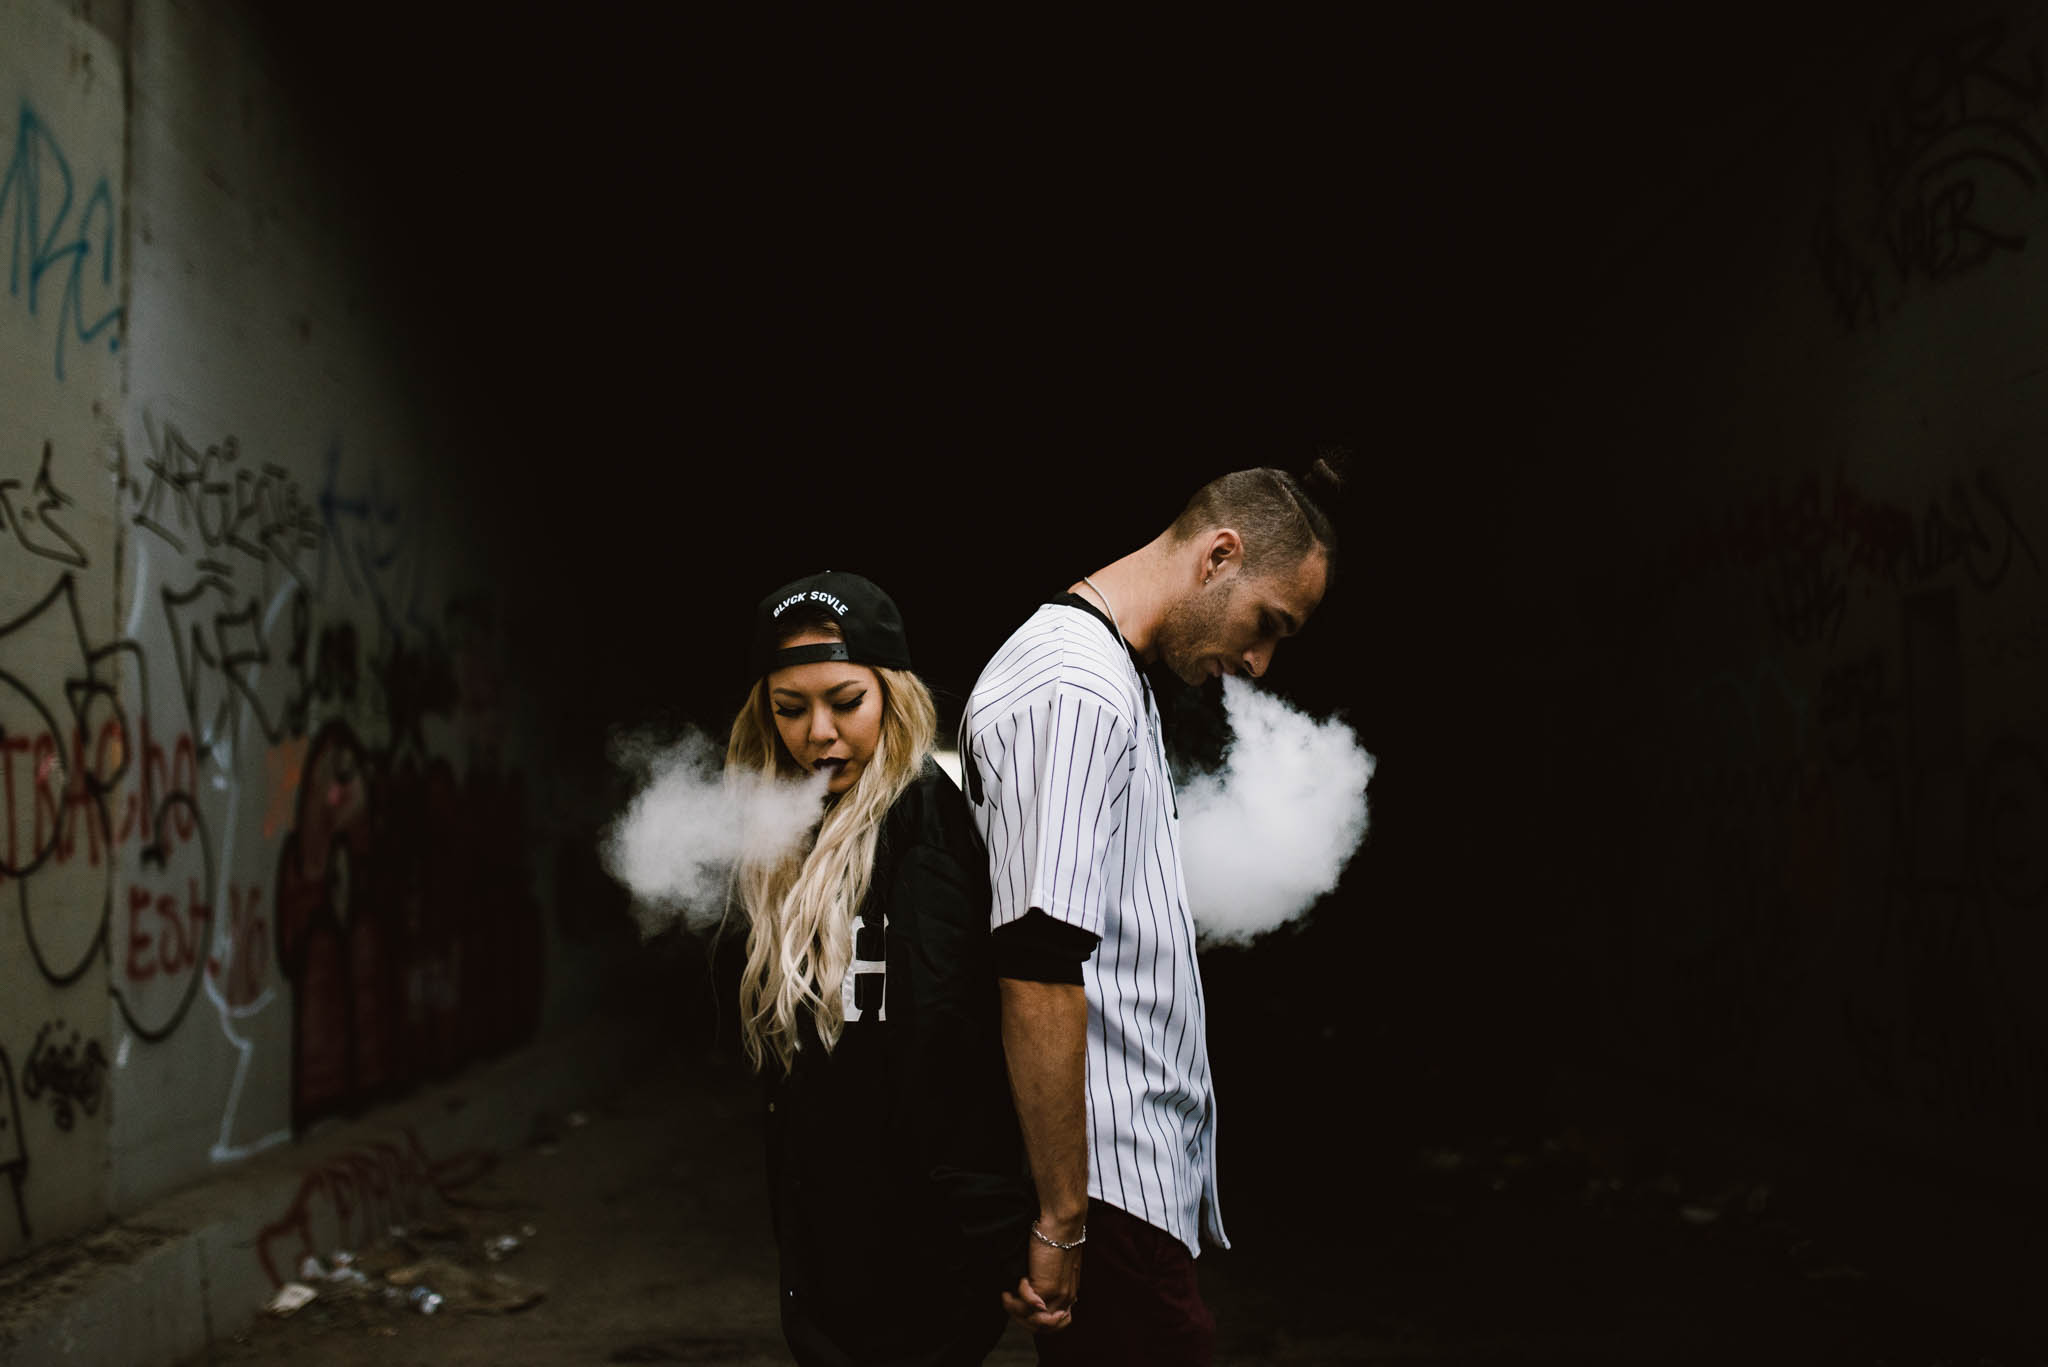 ©Isaiah-&-Taylor-Photography---Downtown-Los-Angeles-Skyline-Engagement-013.jpg